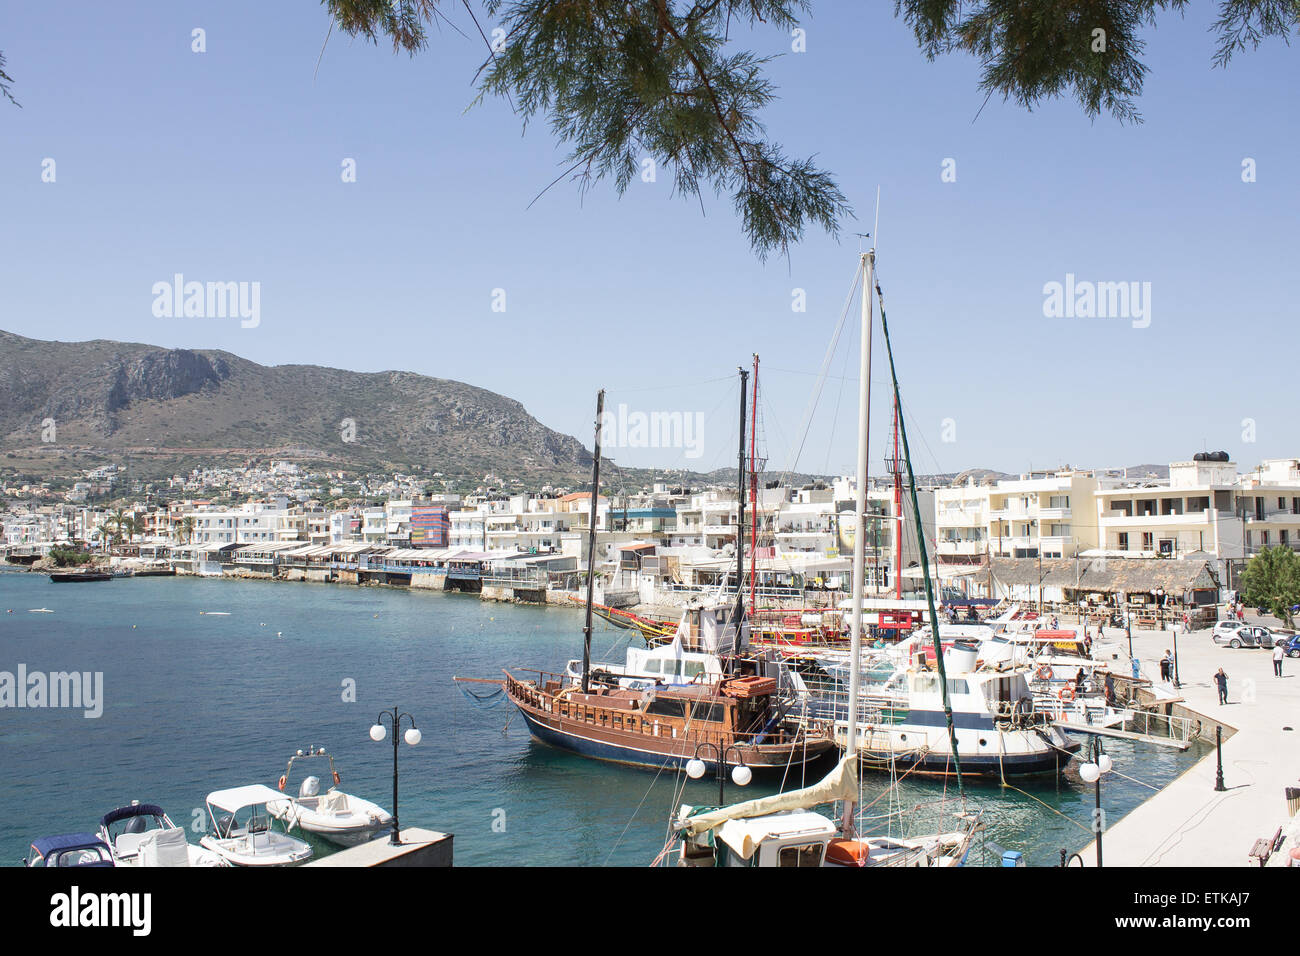 Boats lined up around the harbour in a popular tourist resort of Hersonissos in Crete. Stock Photo